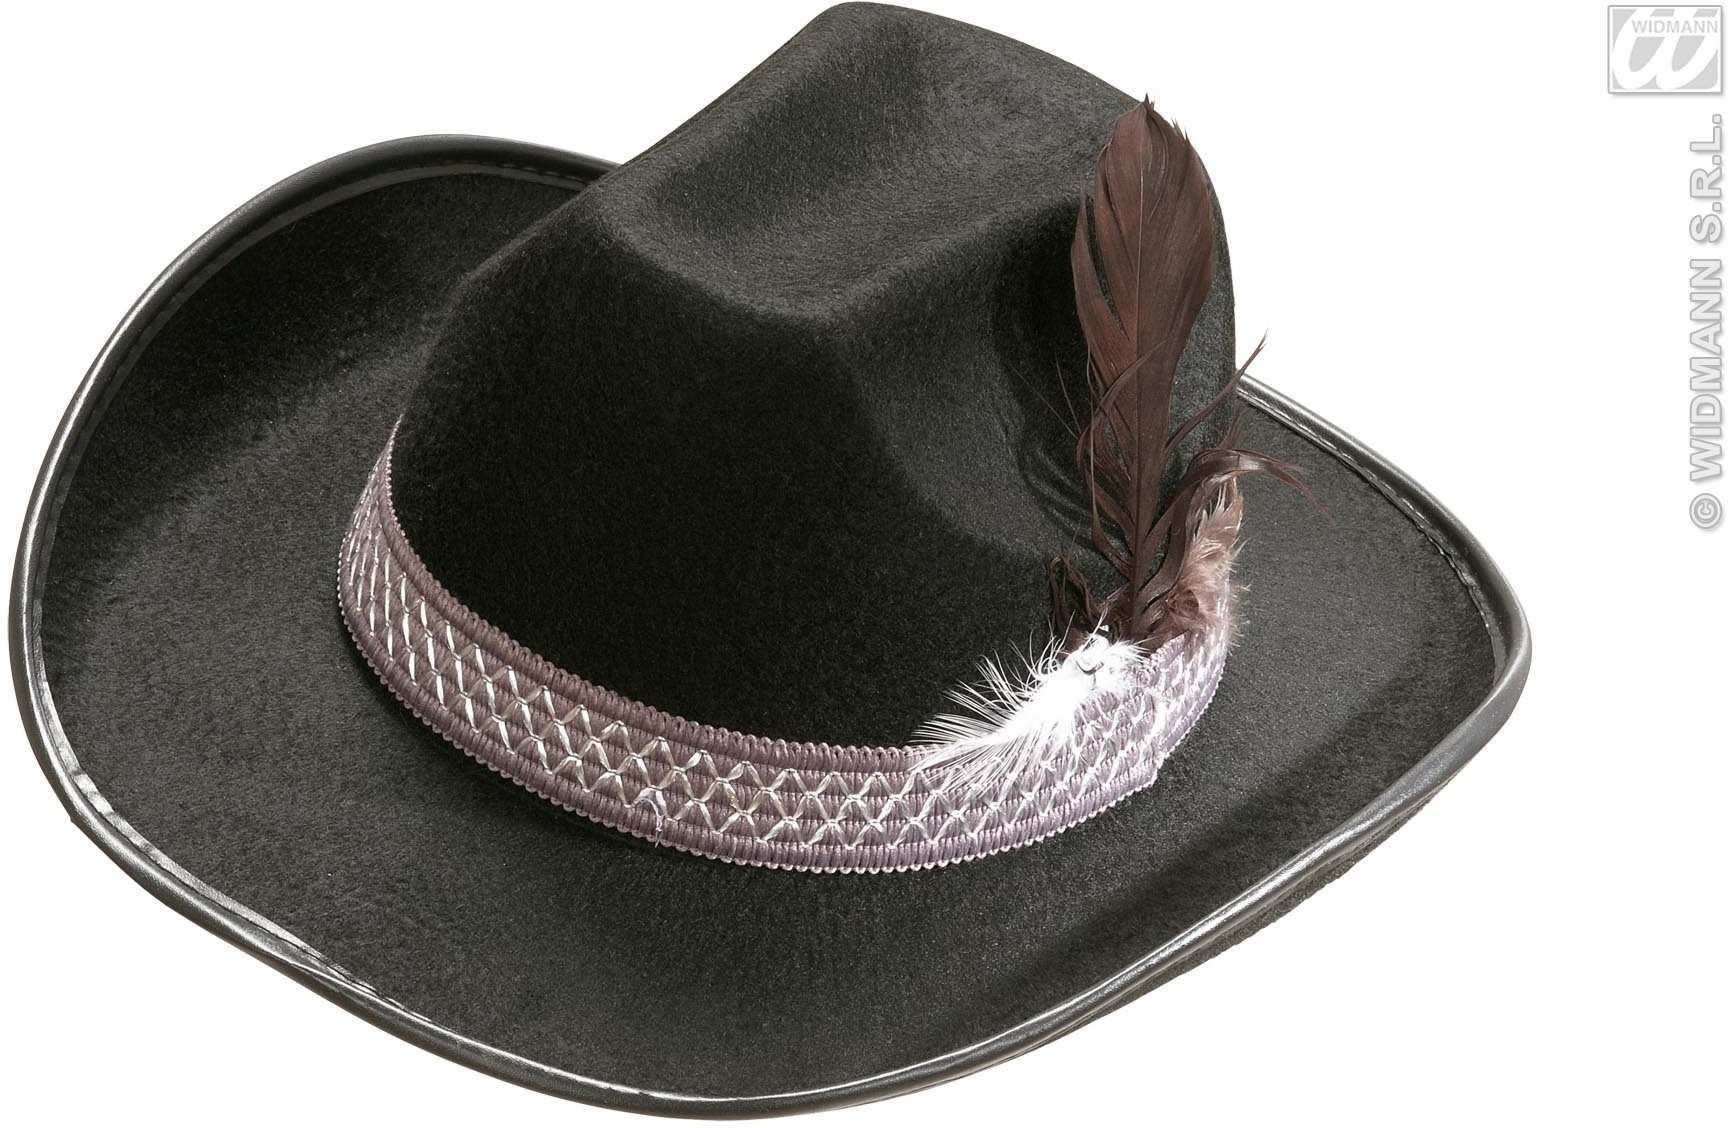 Sheriff Hat W/Feathers Adult Felt - Black - Fancy Dress